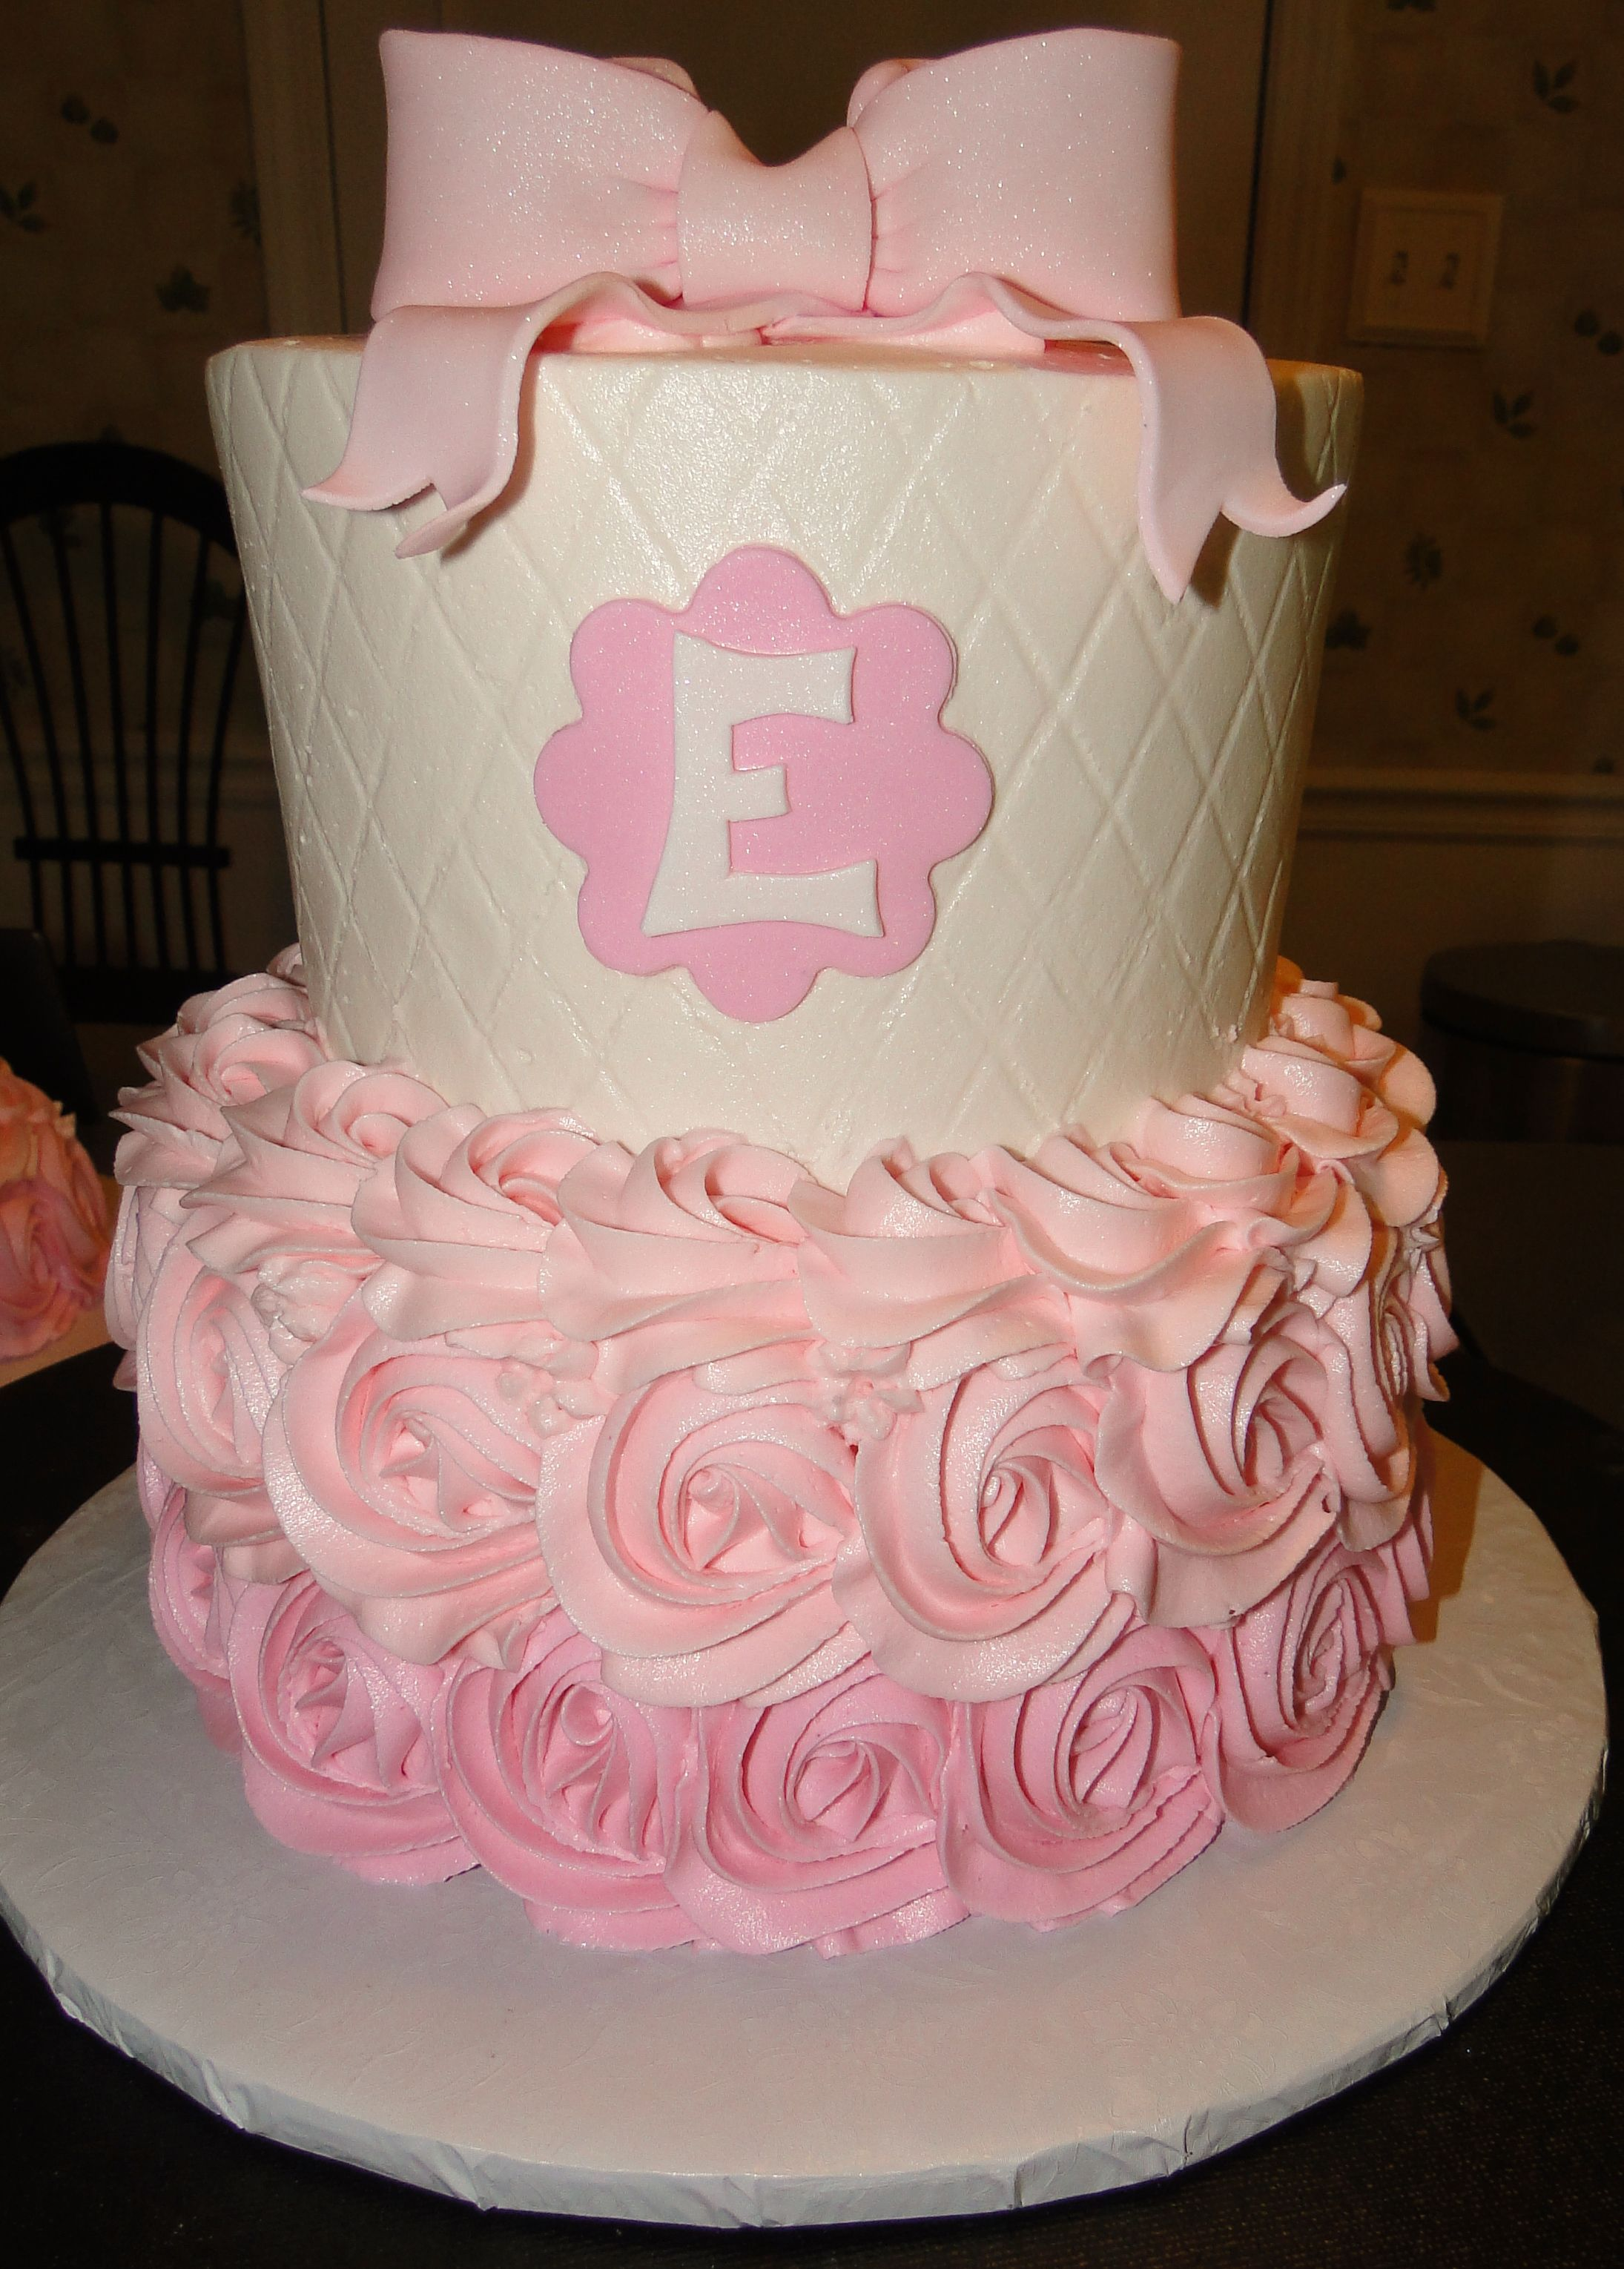 rosettes quilted pink baby girl first birthday tiered cake ombre